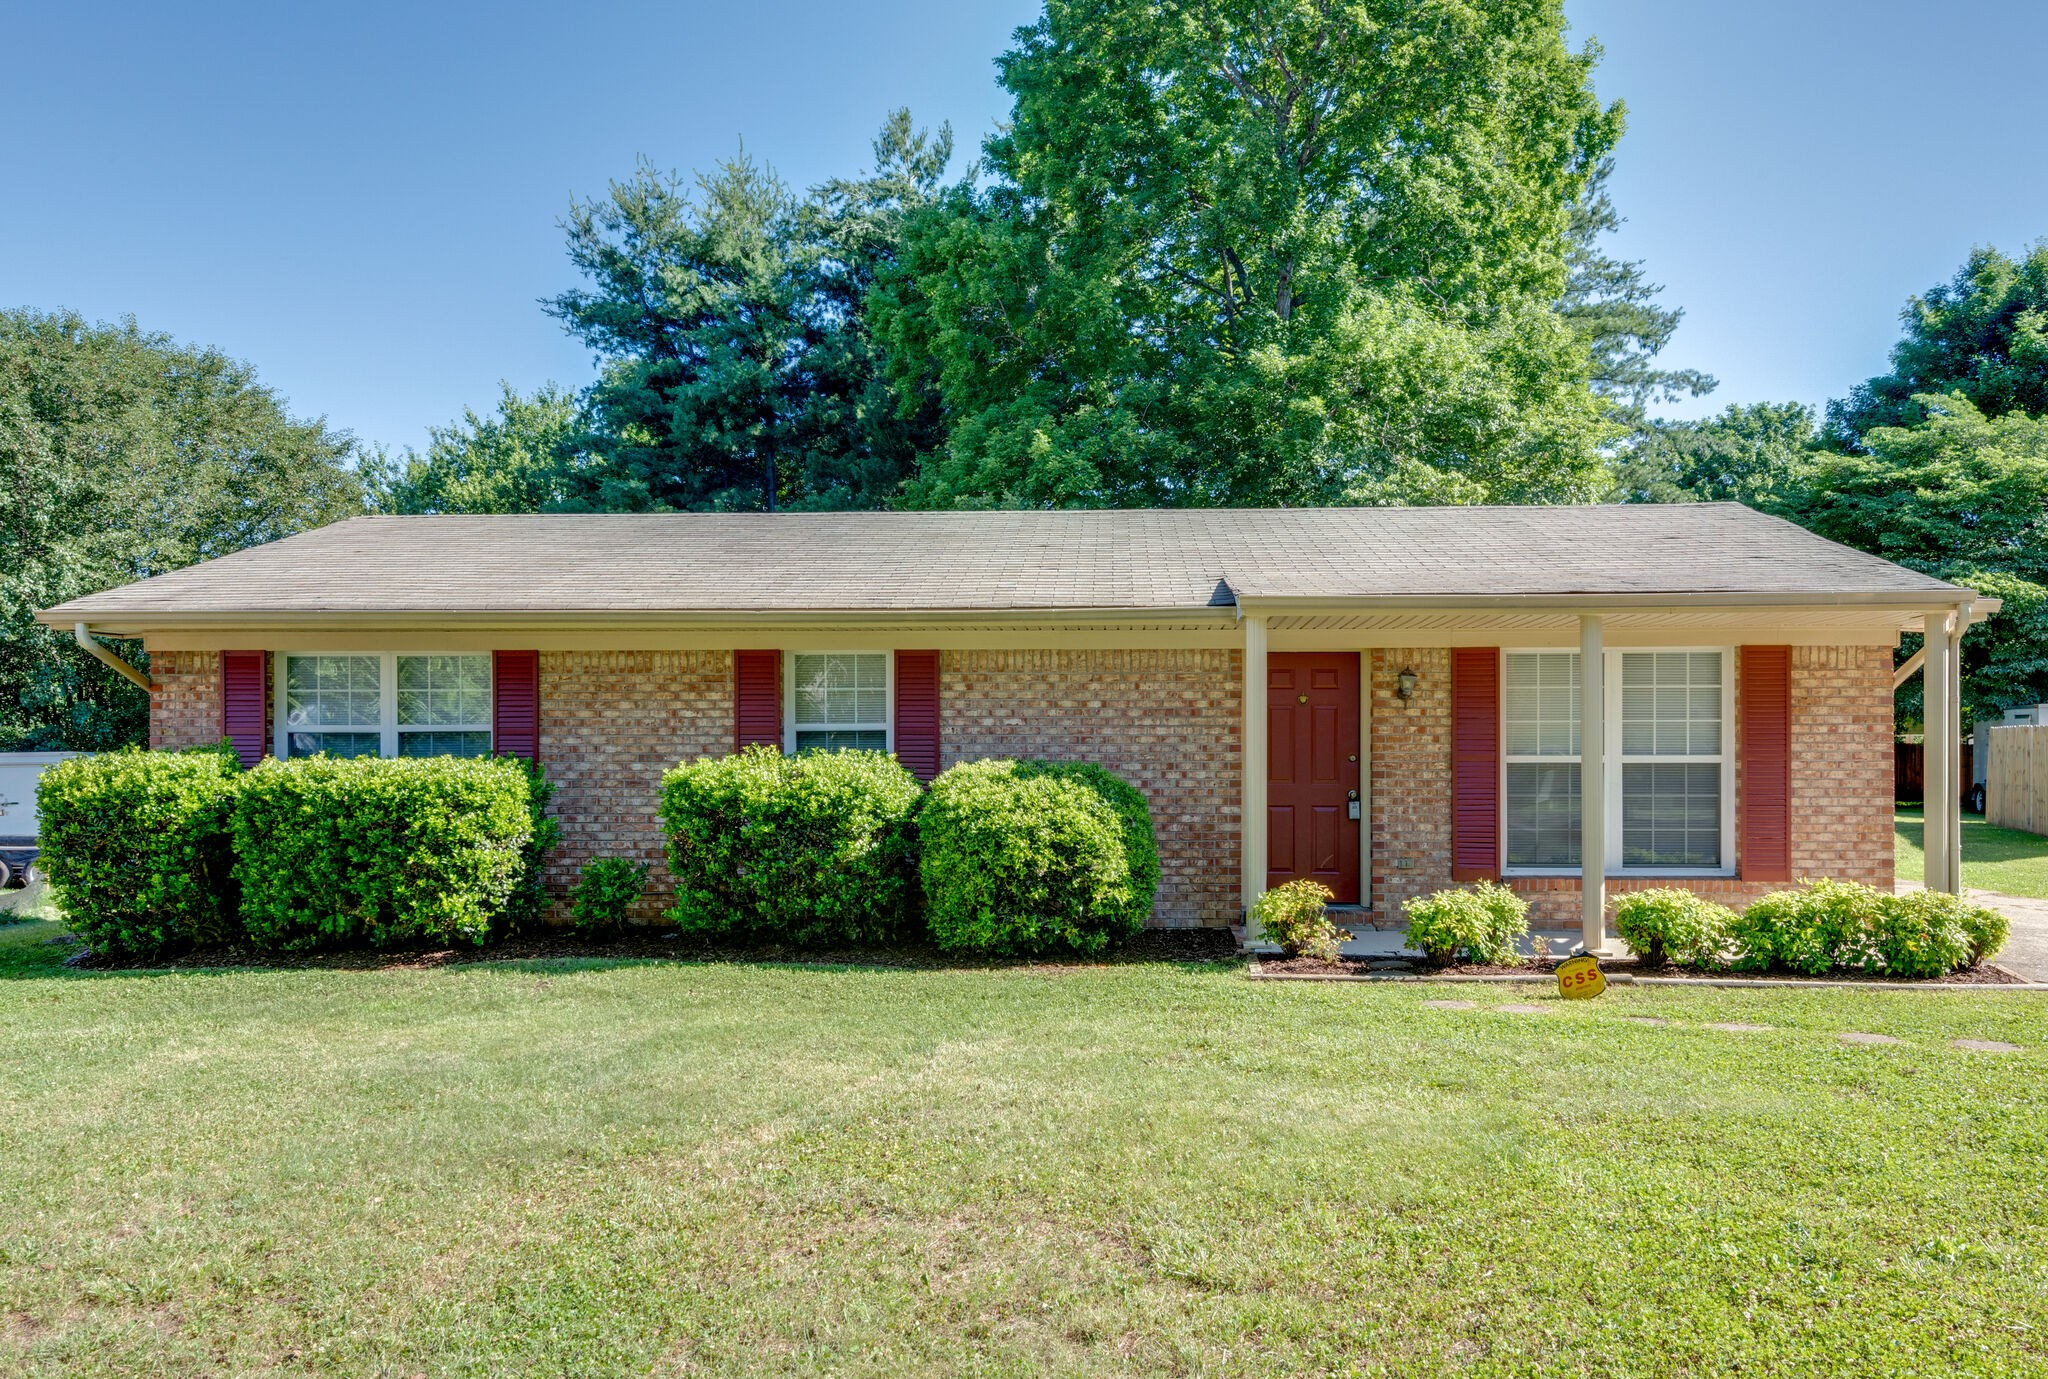 Move-in ready starter home with fresh paint throughout, brand new water heater, newer stove and dishwasher, and one of the most affordable options in Williamson County.  Lovingly maintained and located on a large level lot with mature trees.  Located on a quiet cul-de-sac with easy access to shopping.  Priced to sell quickly.